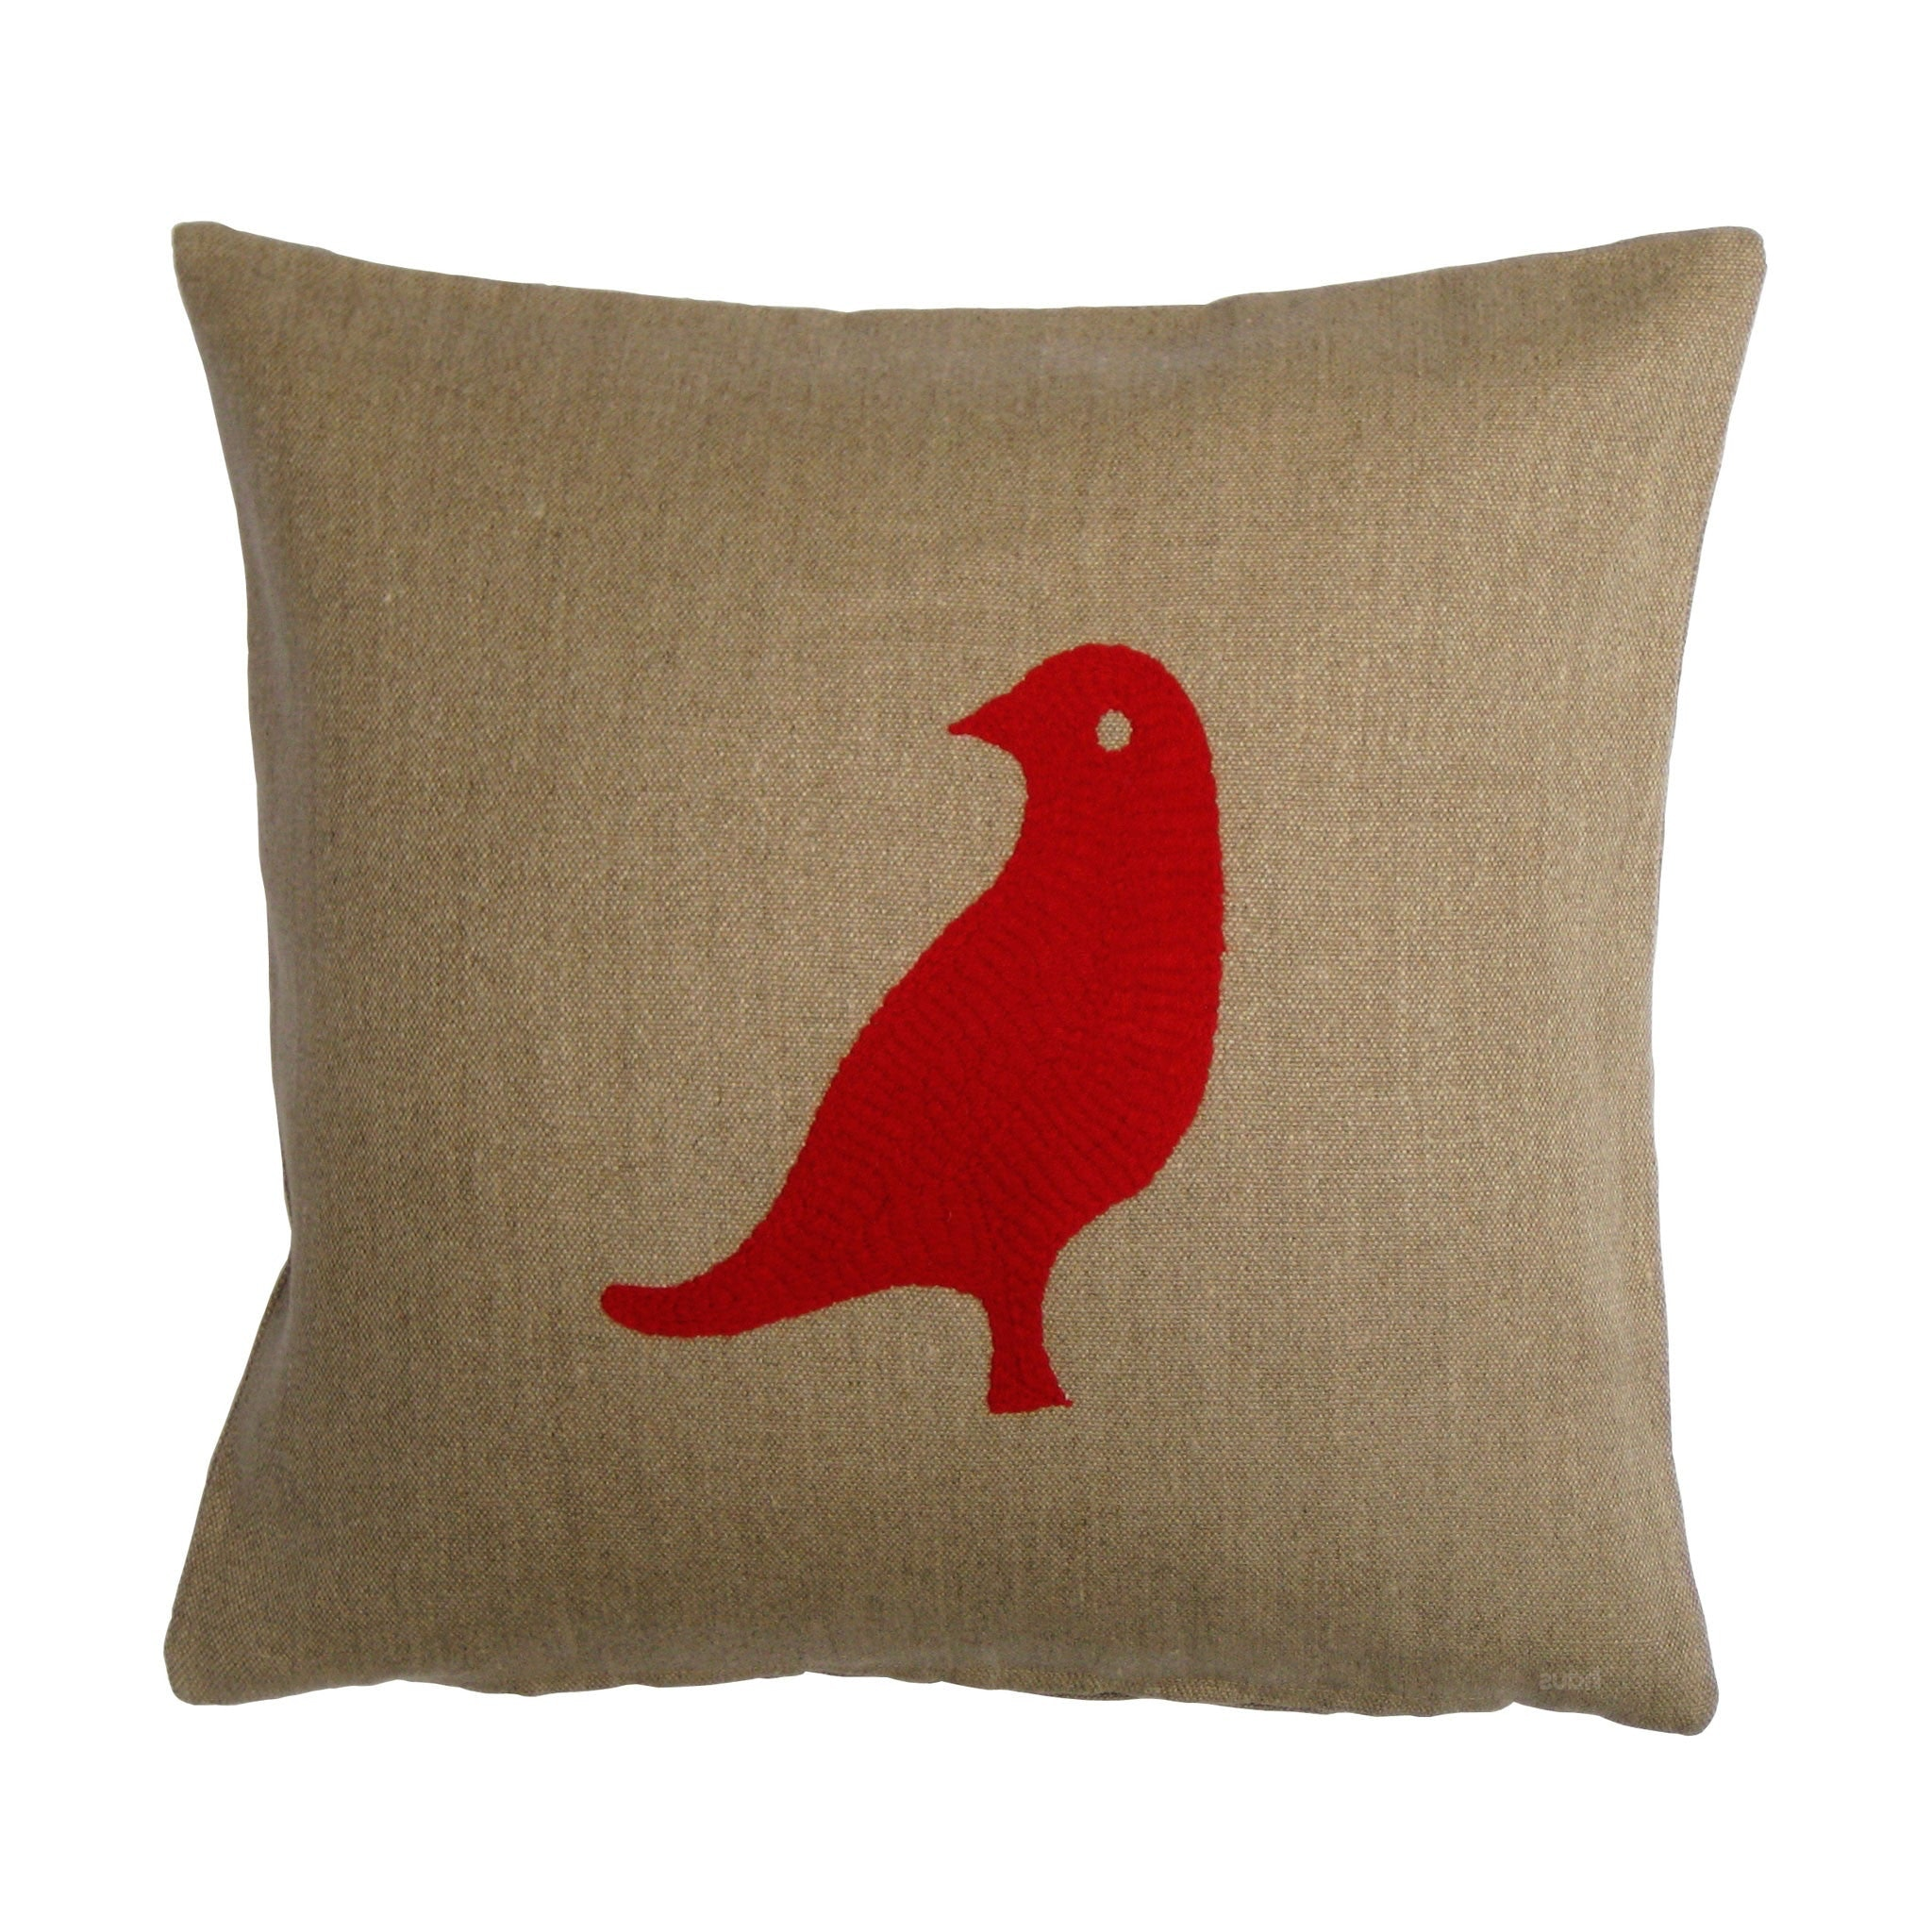 Dove cushion by Charlene Mullen